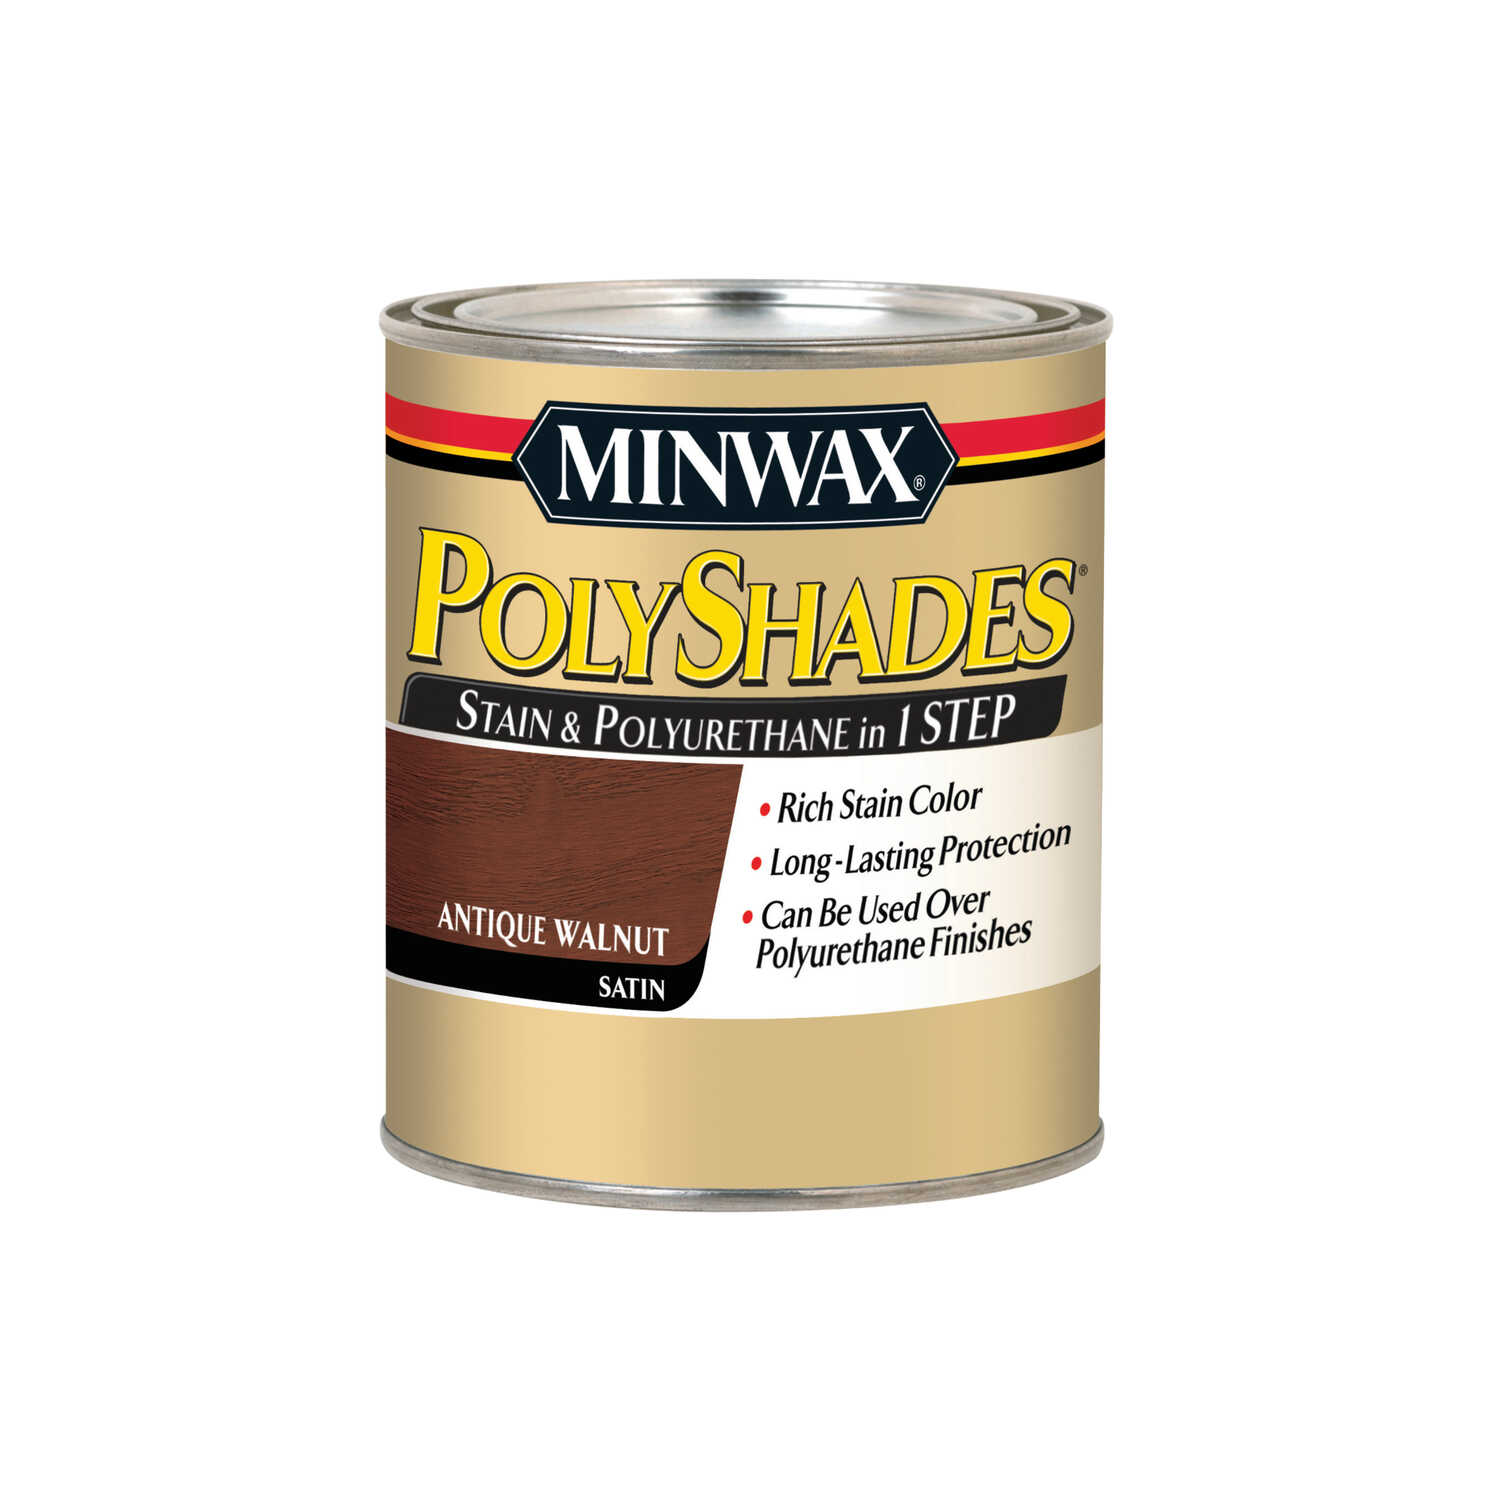 Minwax  PolyShades  Semi-Transparent  Satin  Antique Walnut  Oil-Based  Stain  1 qt.